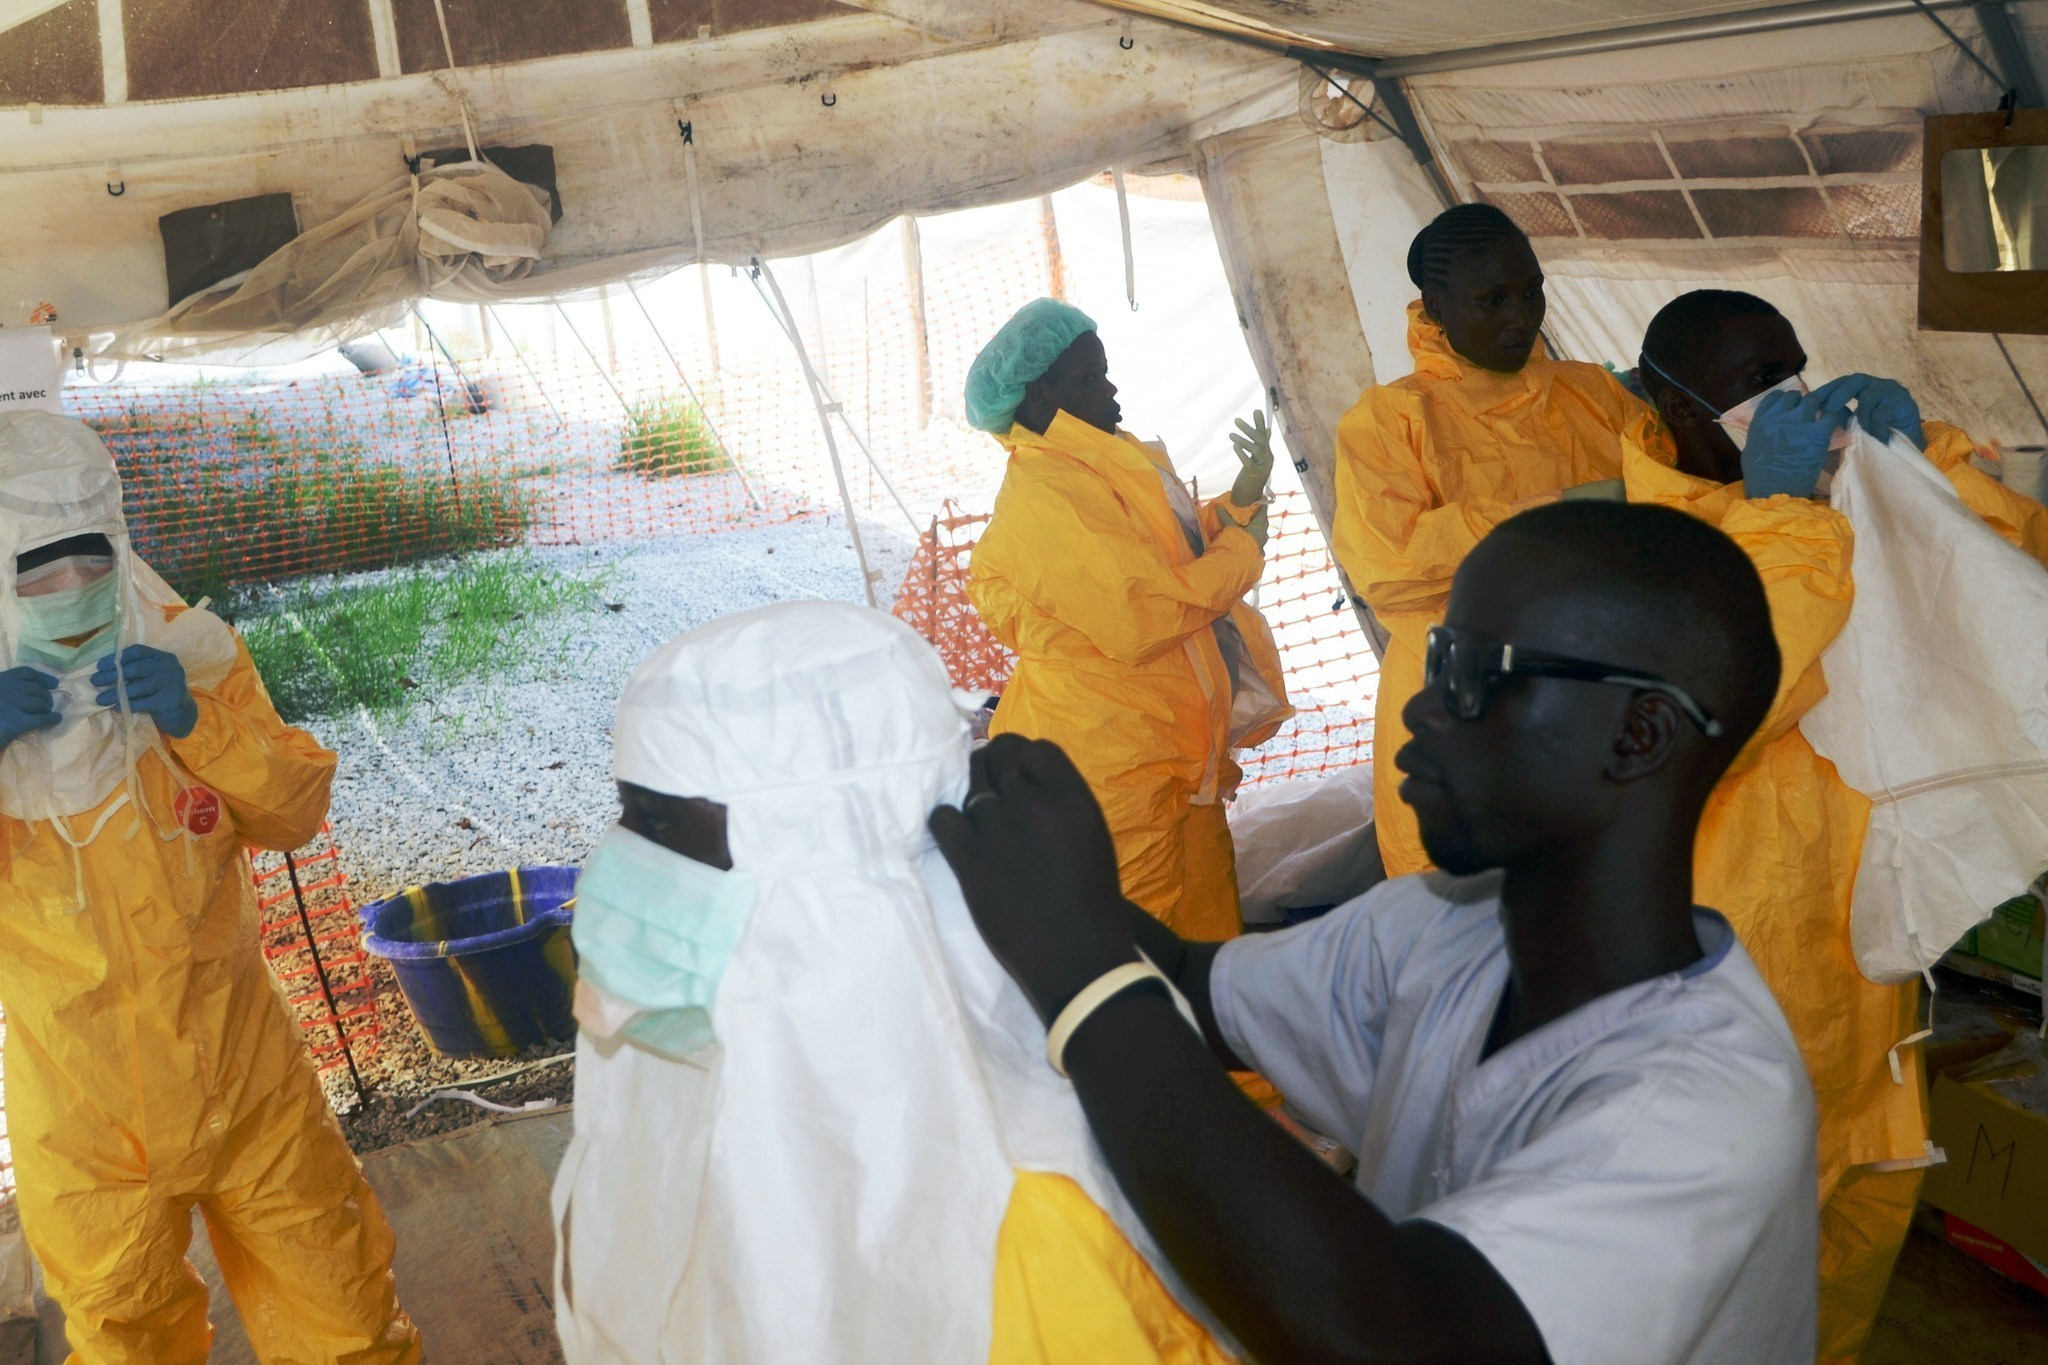 Second American volunteer contracts Ebola in West Africa